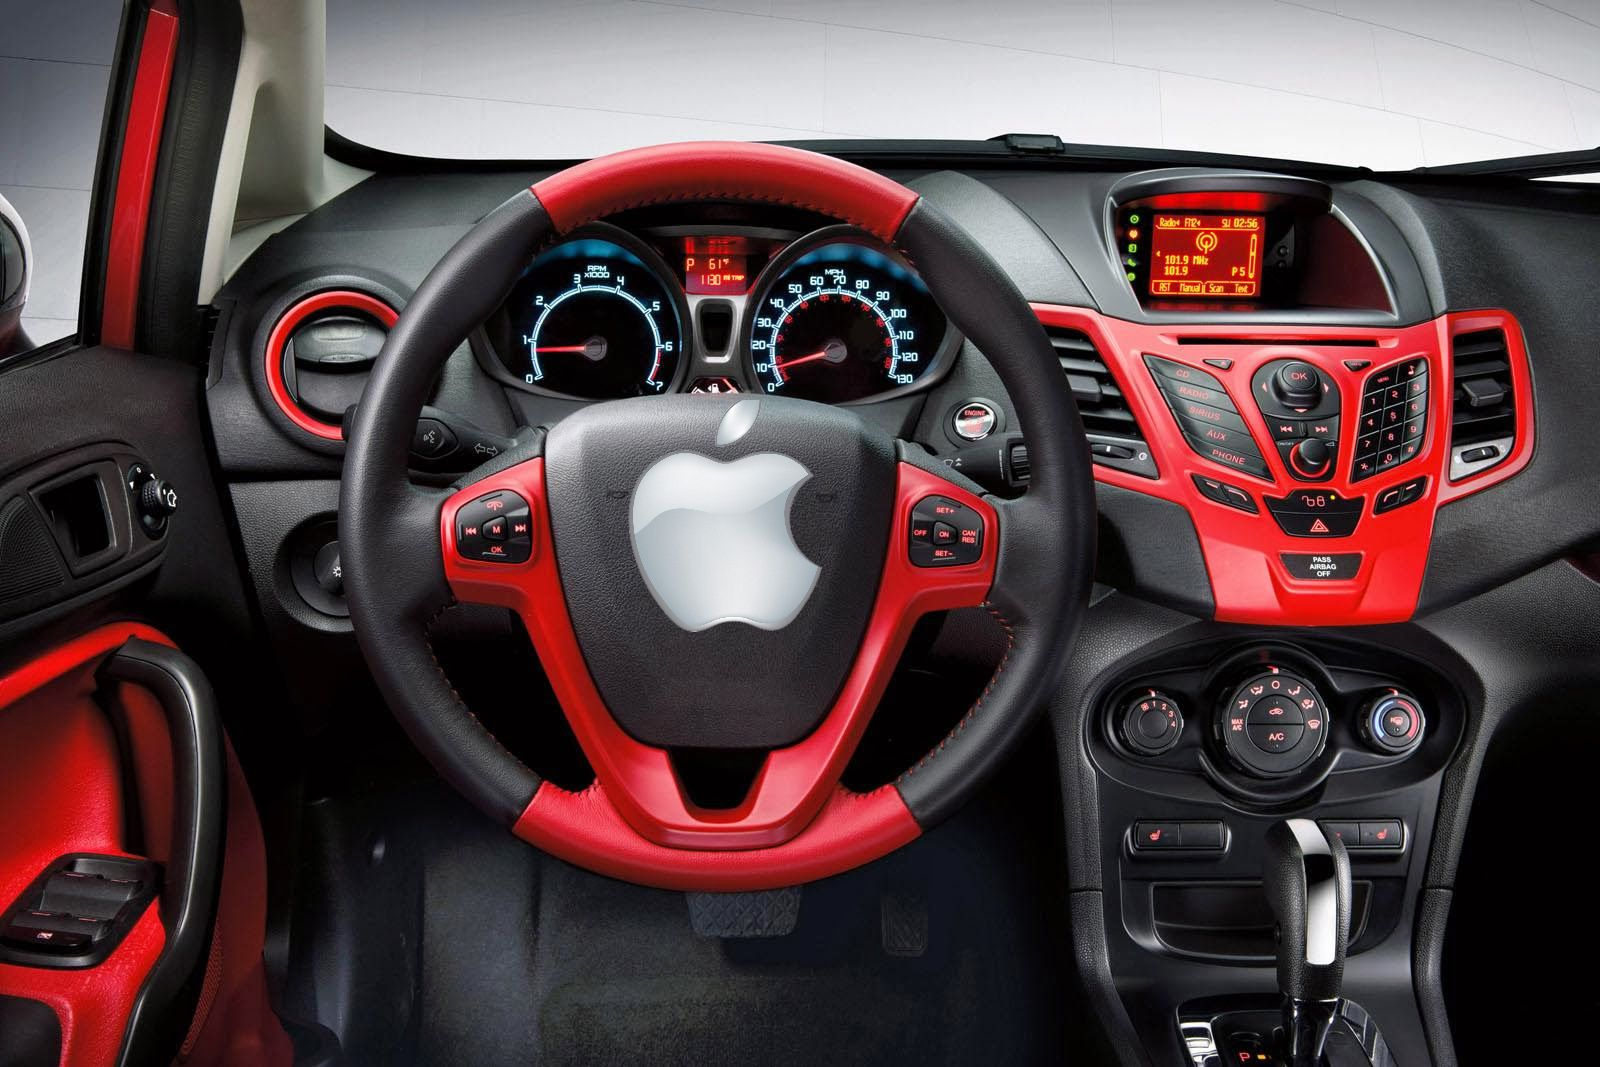 Exciting News For Apple Fan Boys I Mean For Riches Now Apple Announced That They Will Embed Ios In Car Ford Ranger Interior Ford Fiesta Ford Focus Sedan